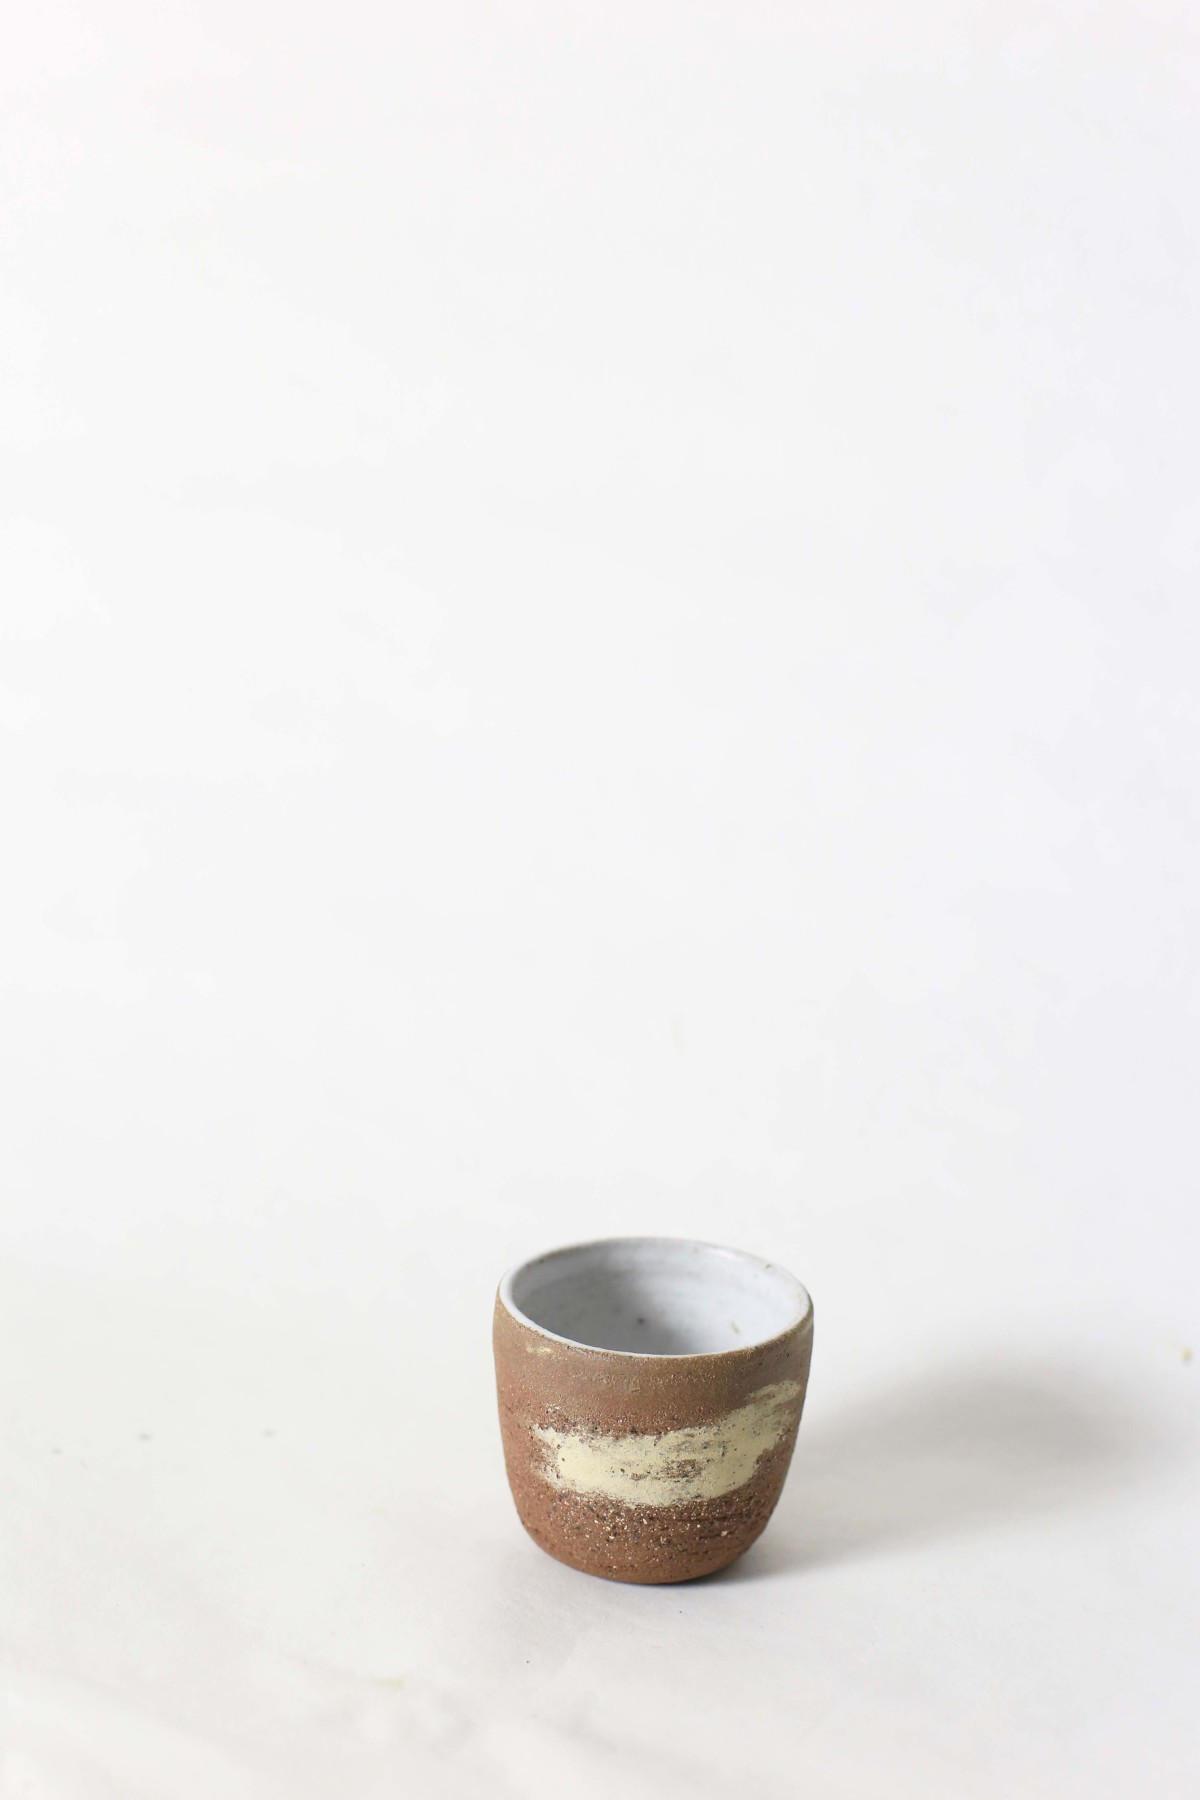 terracotta and sand color clay cup on a white background over view